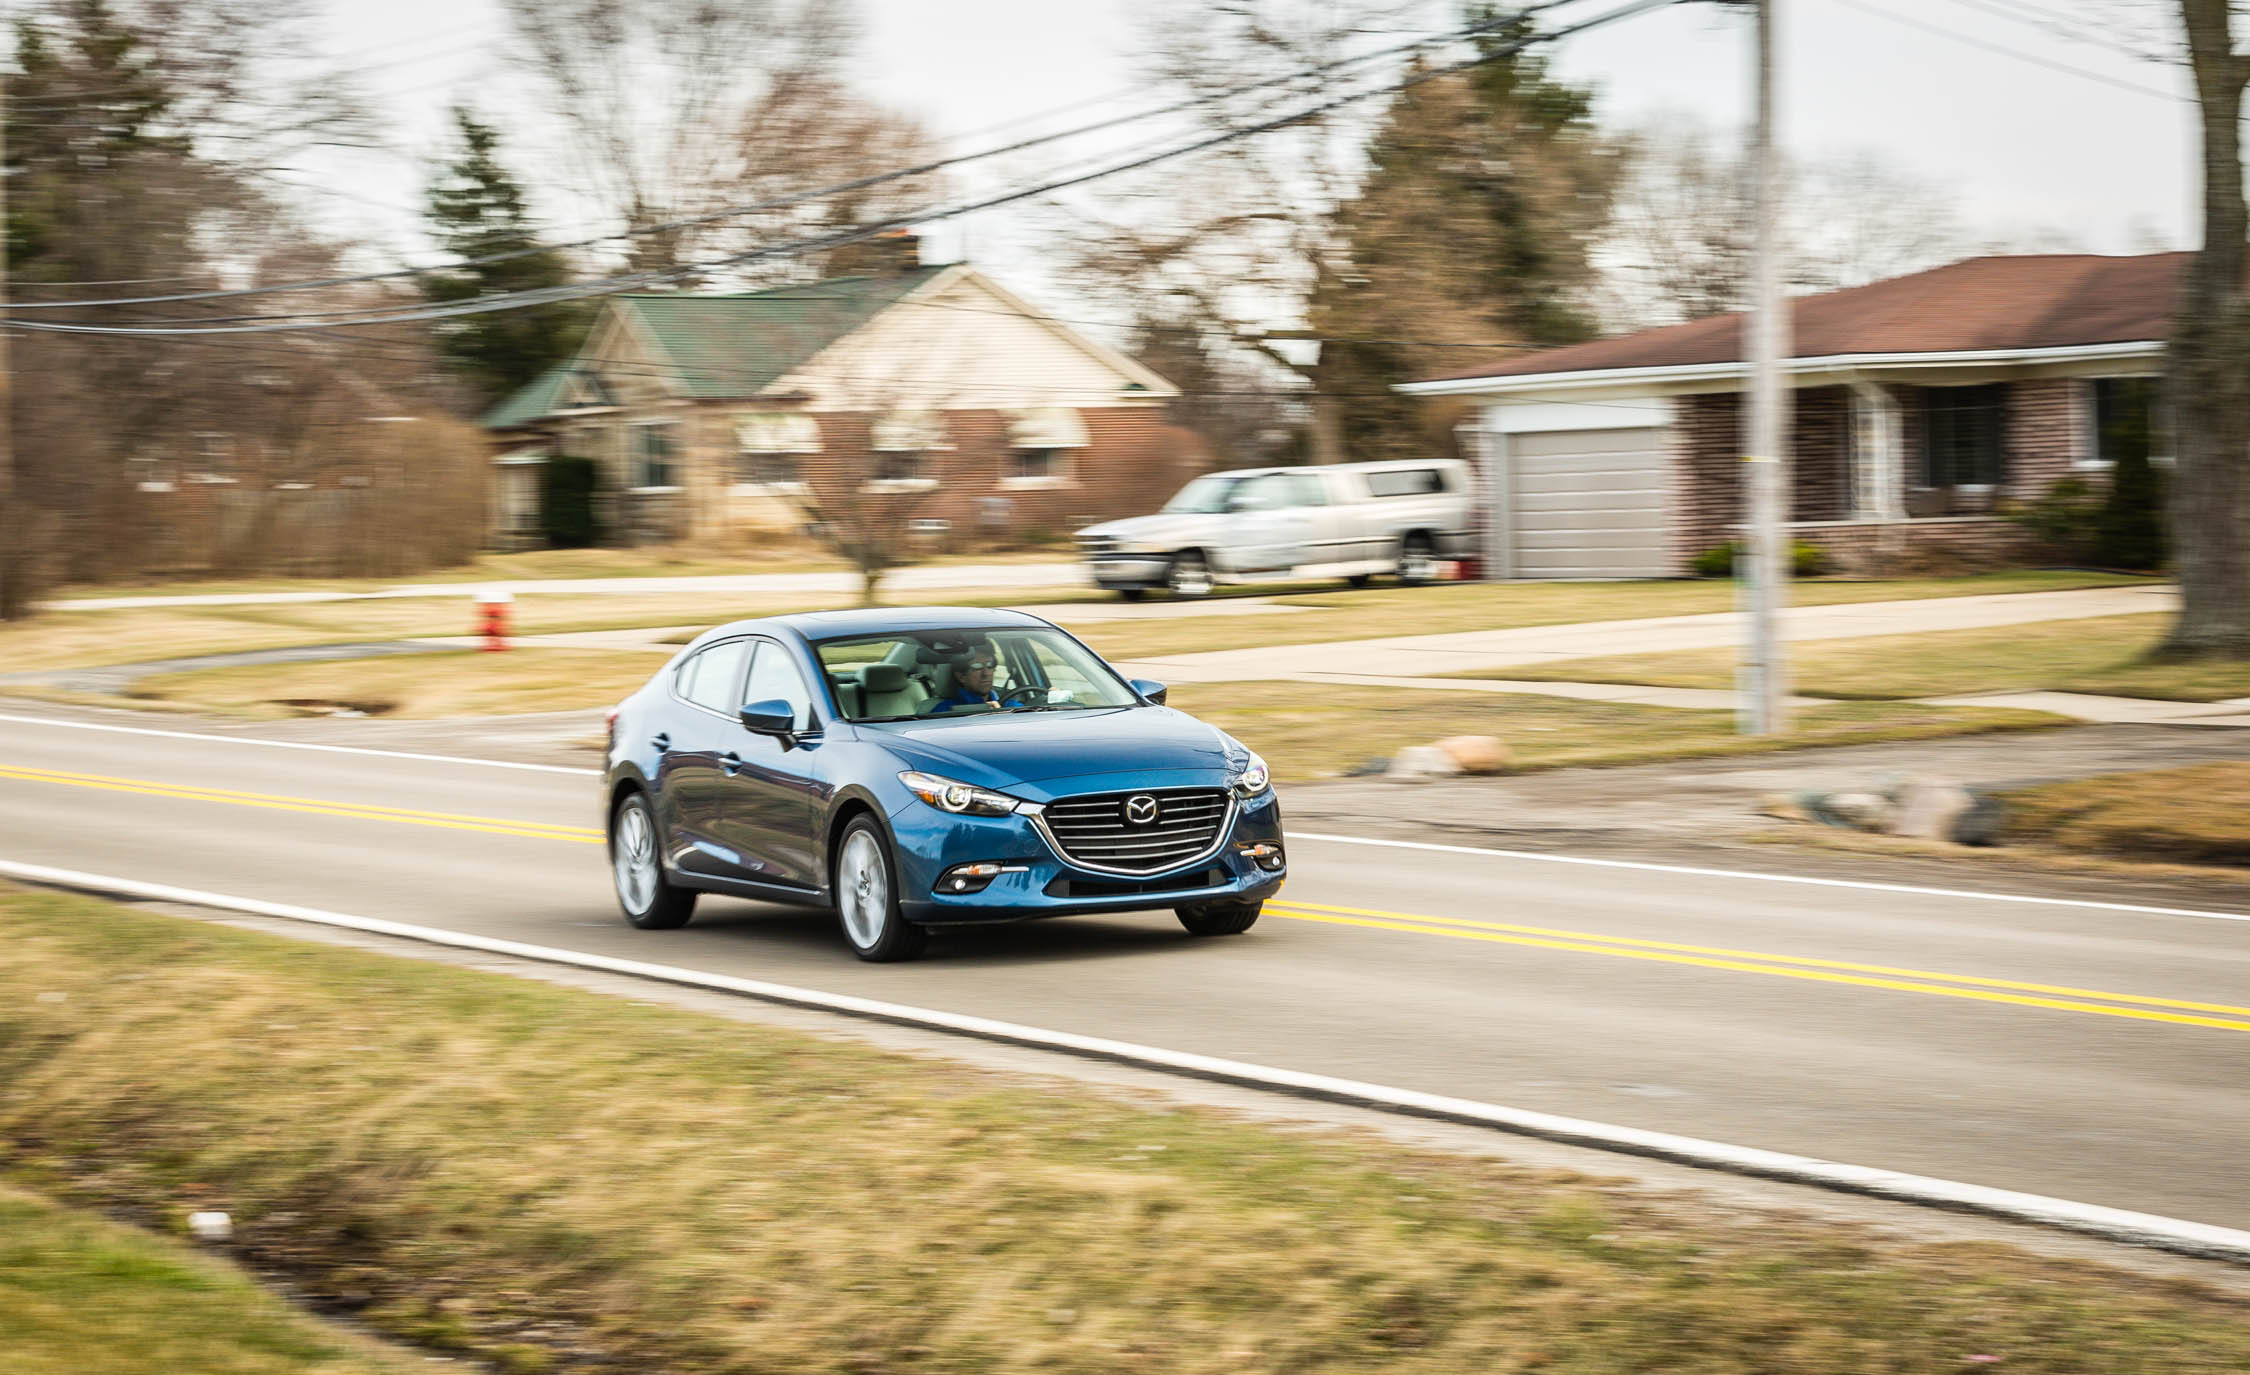 2017 Mazda 3 Grand Touring Sedan Test Drive (Photo 43 of 51)